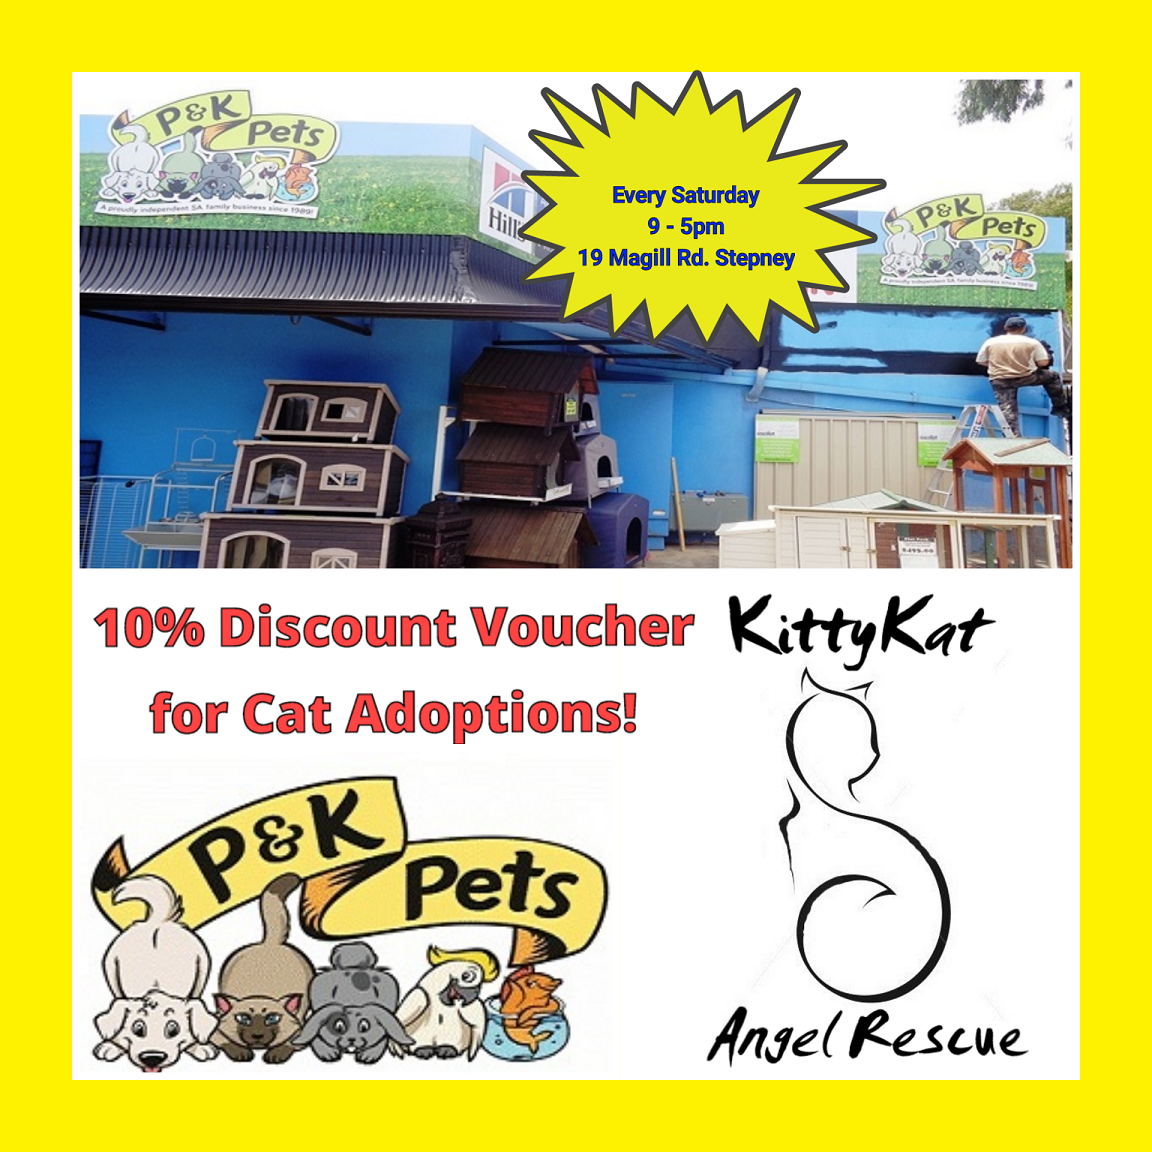 Adoption Days @ P and K Pets gallery image